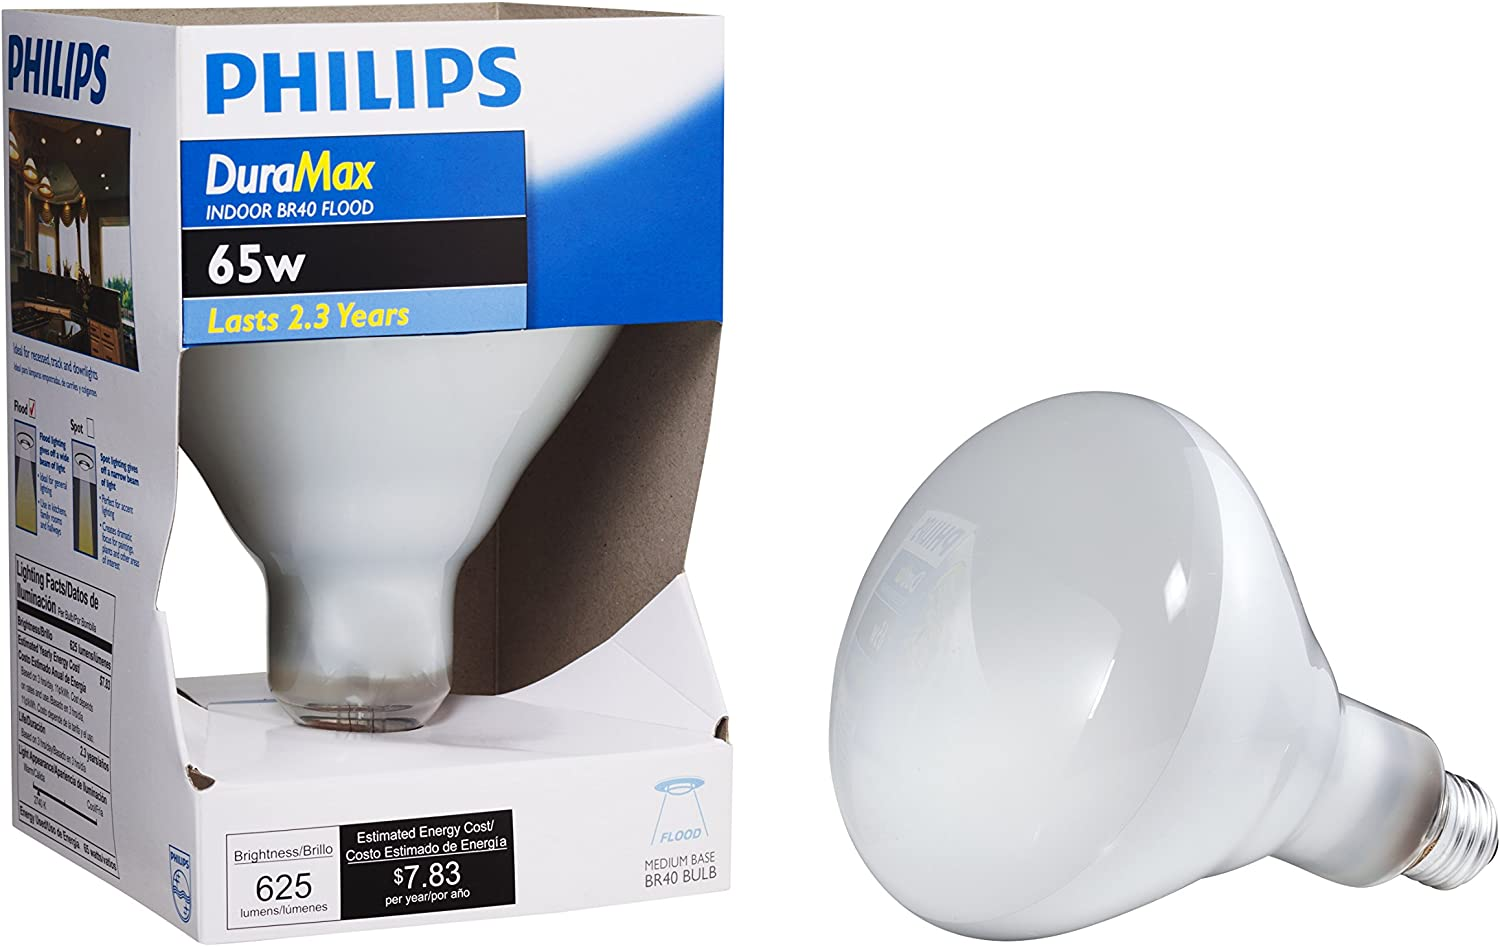 Philips DuraMax 65W Frosted Medium Base BR40 Incandescent Floodlight Light Bulb